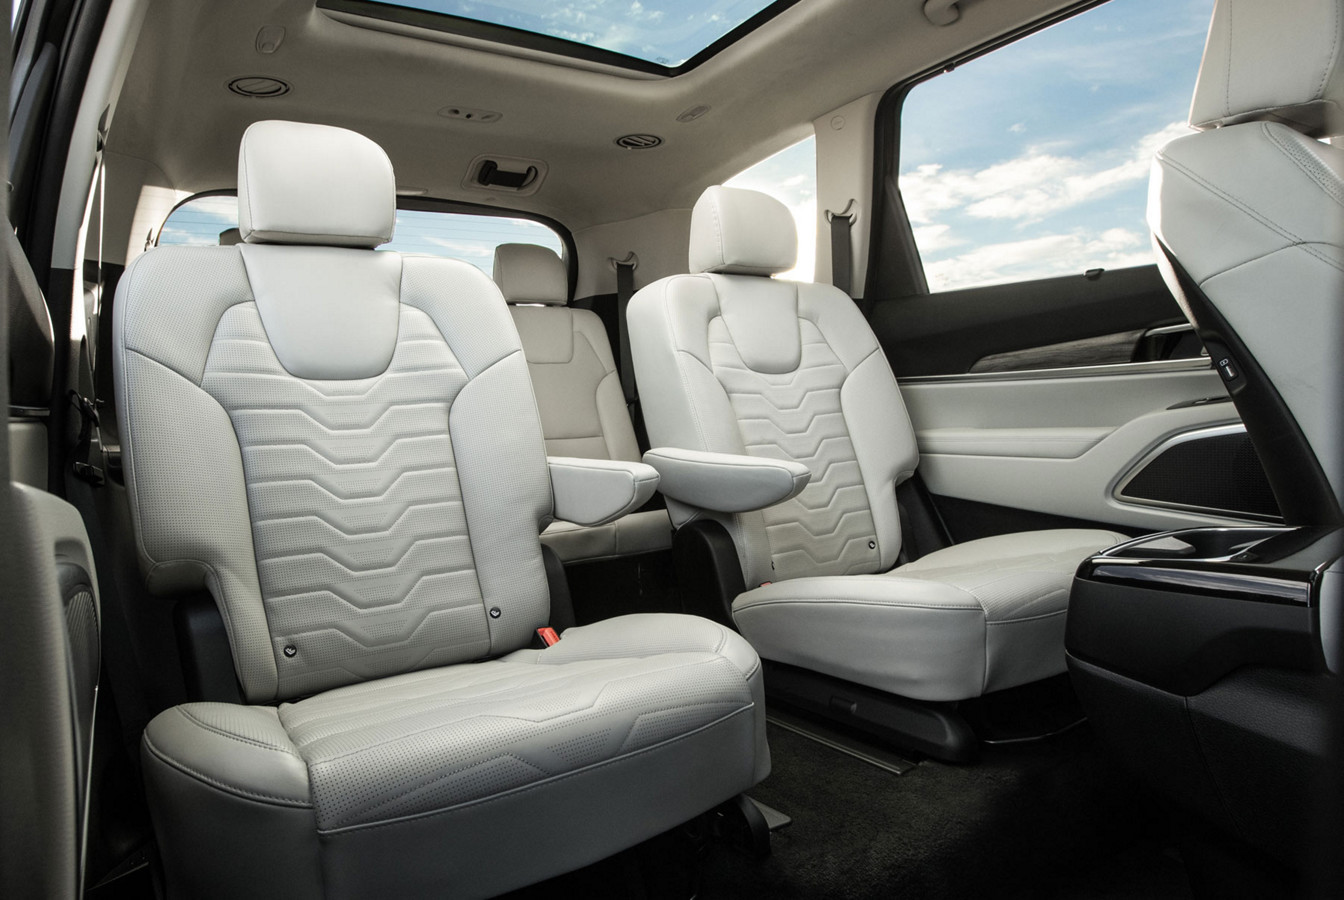 Rear Seating in the Telluride